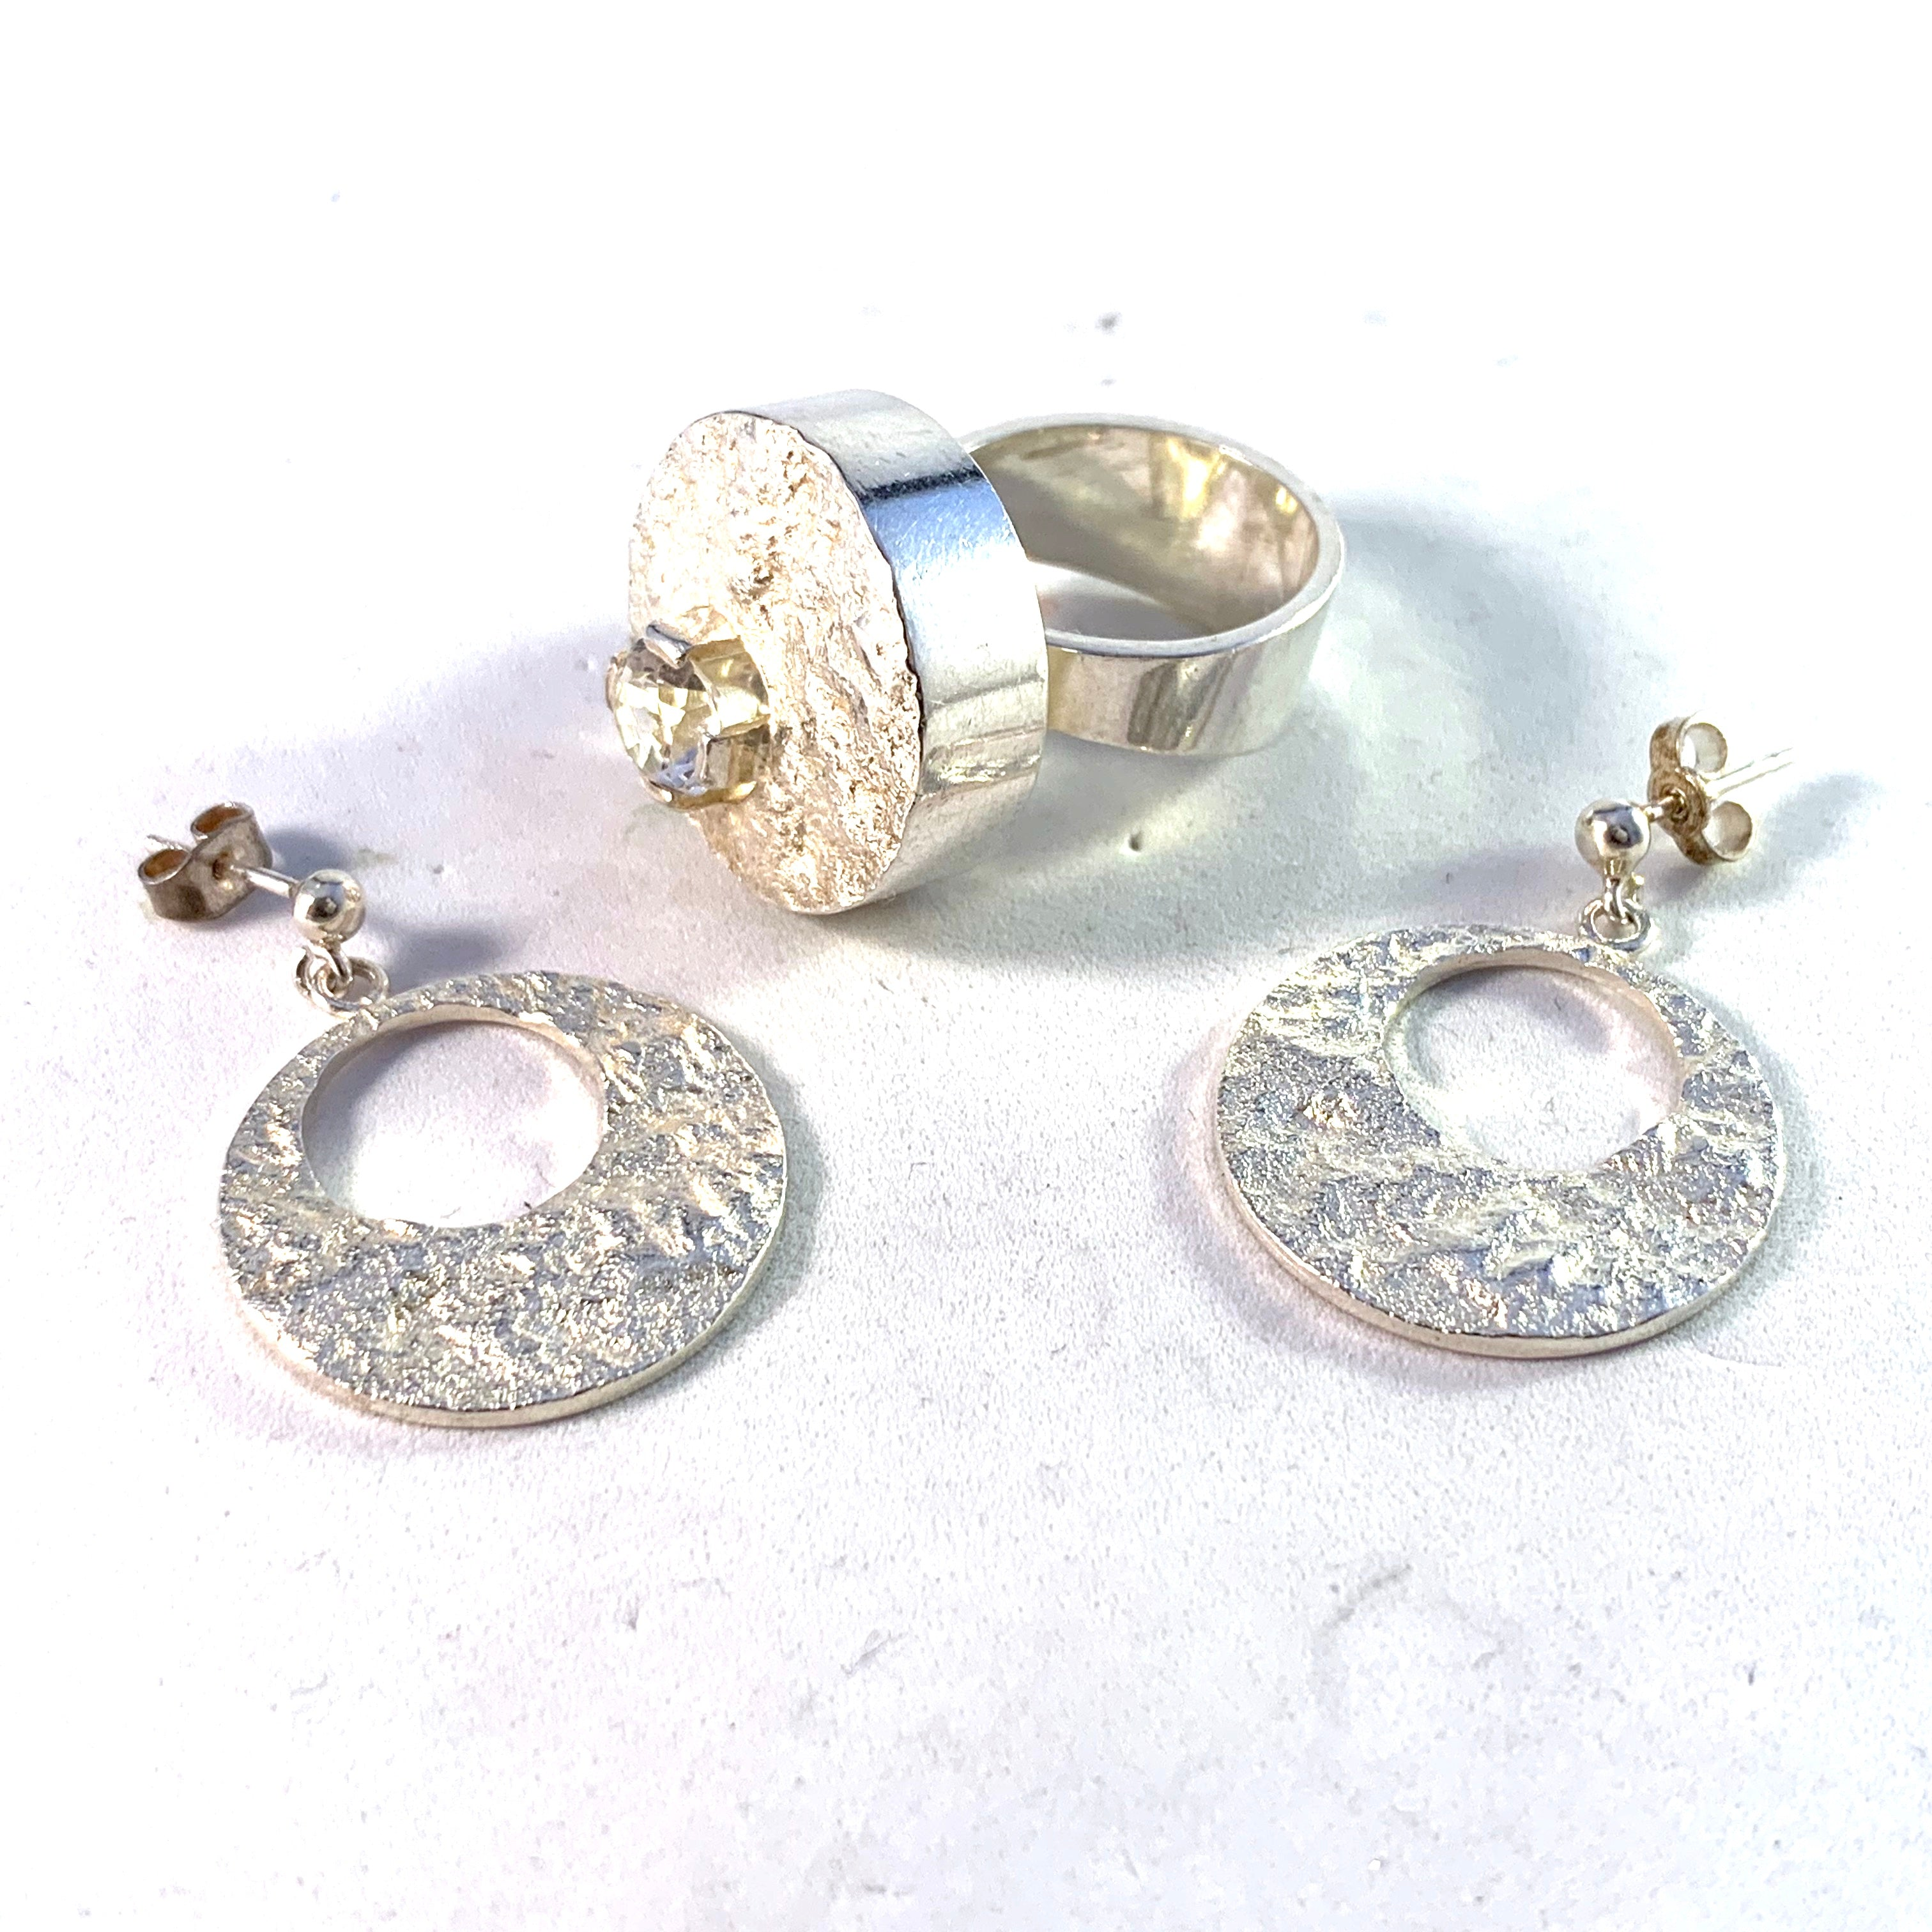 Ceson, Sweden 1969 Space Age Sterling Silver Rock Crystal Ring and Earrings.